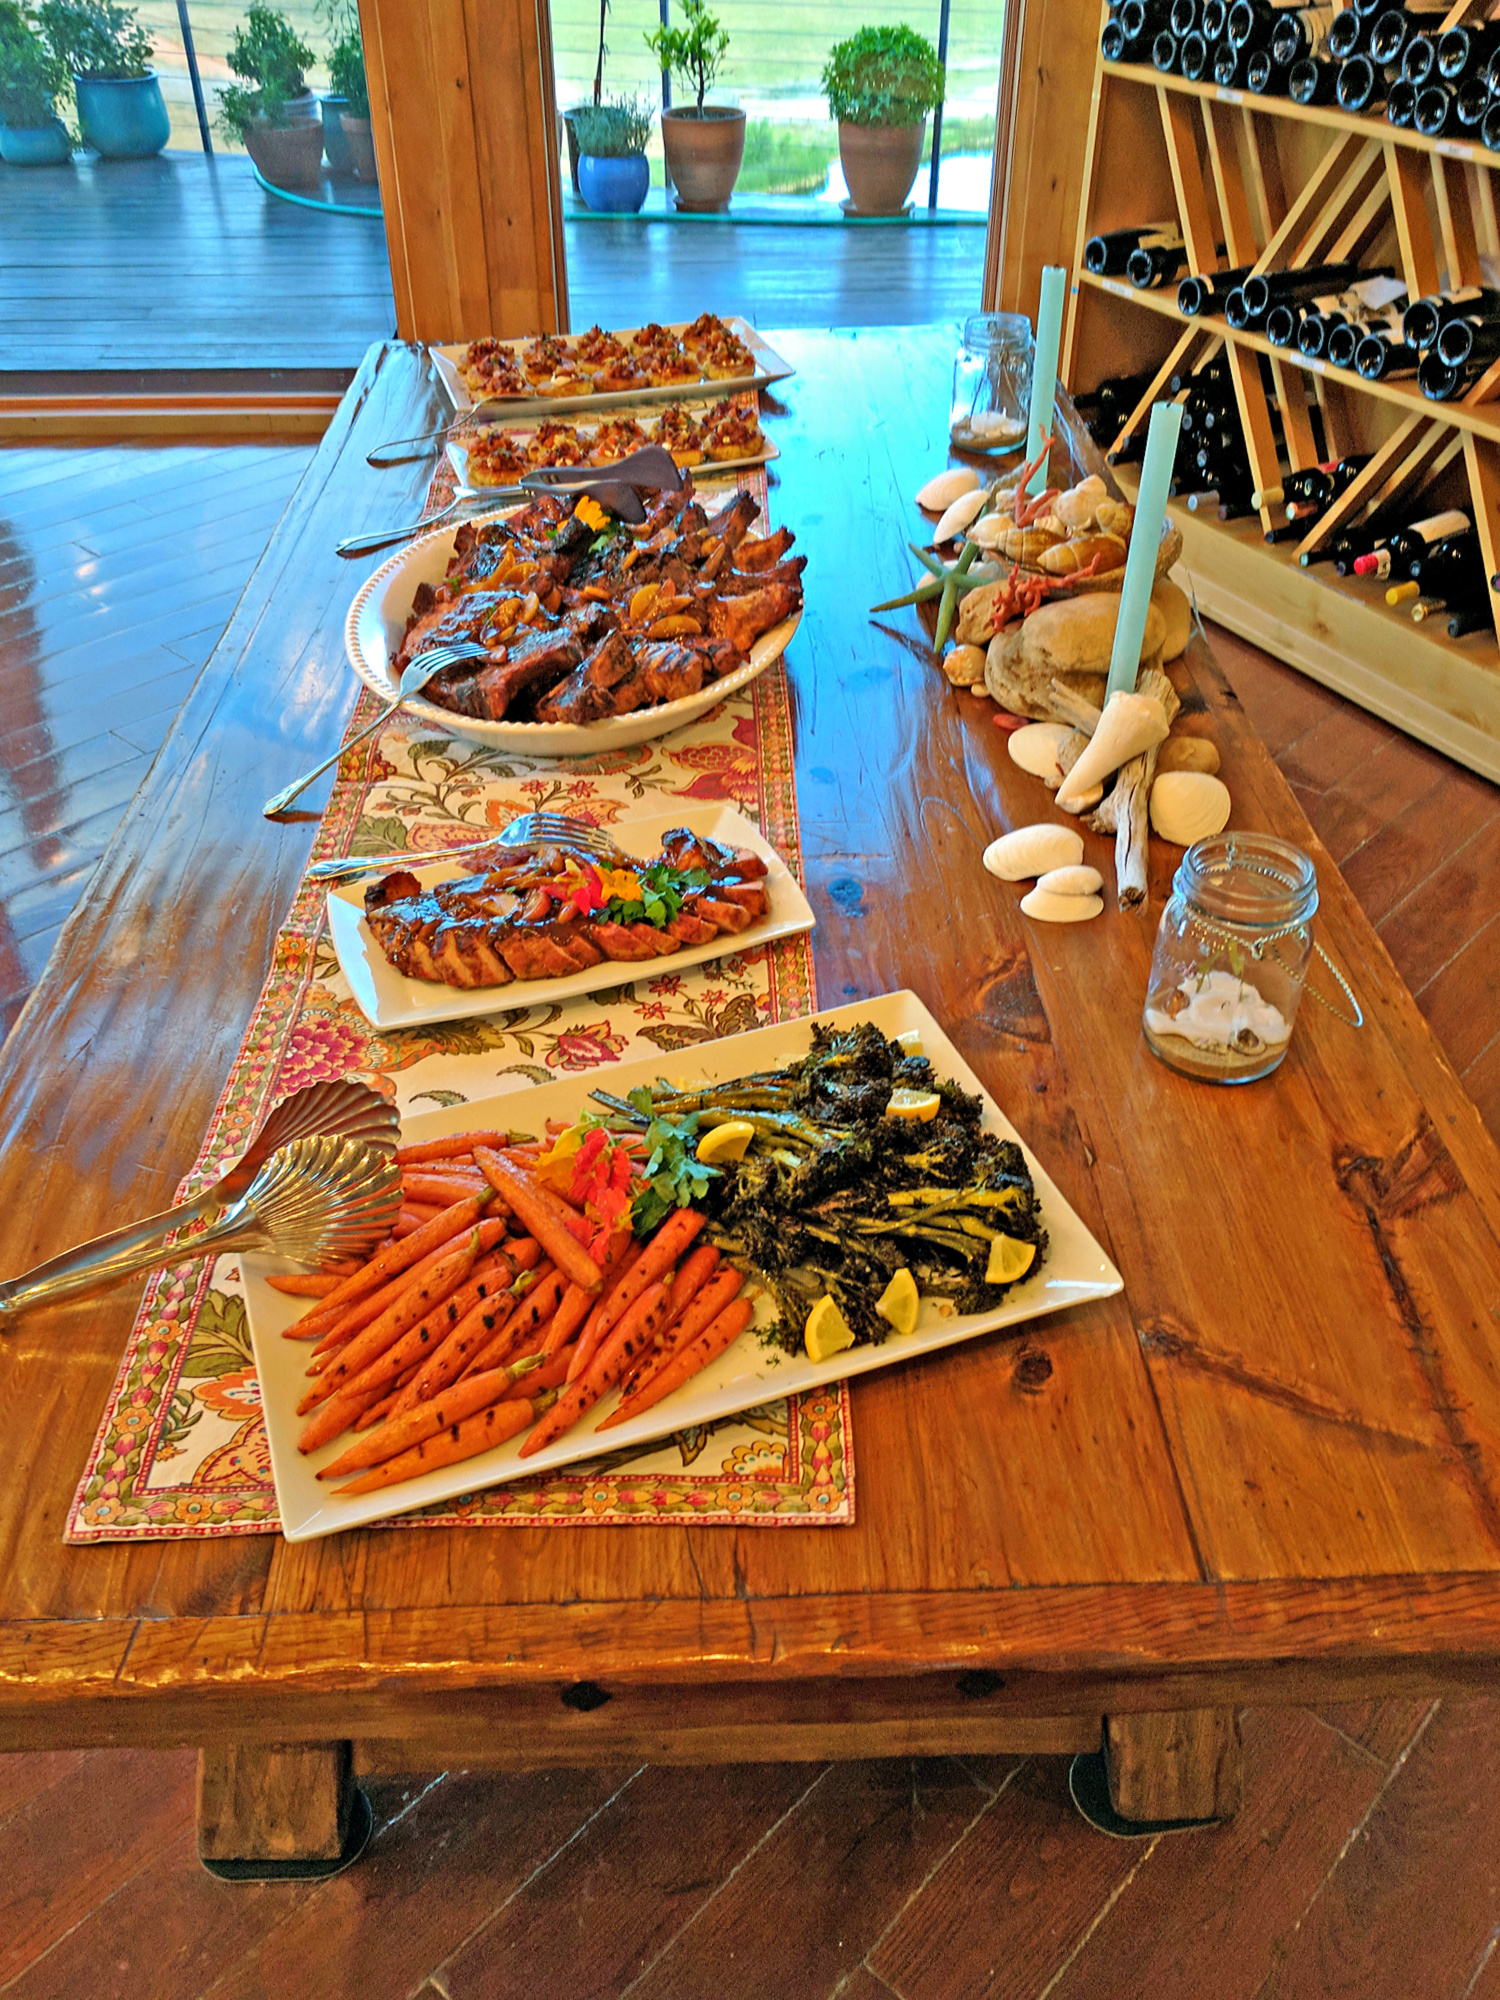 Dinner served family style at Red Reflet Ranch.